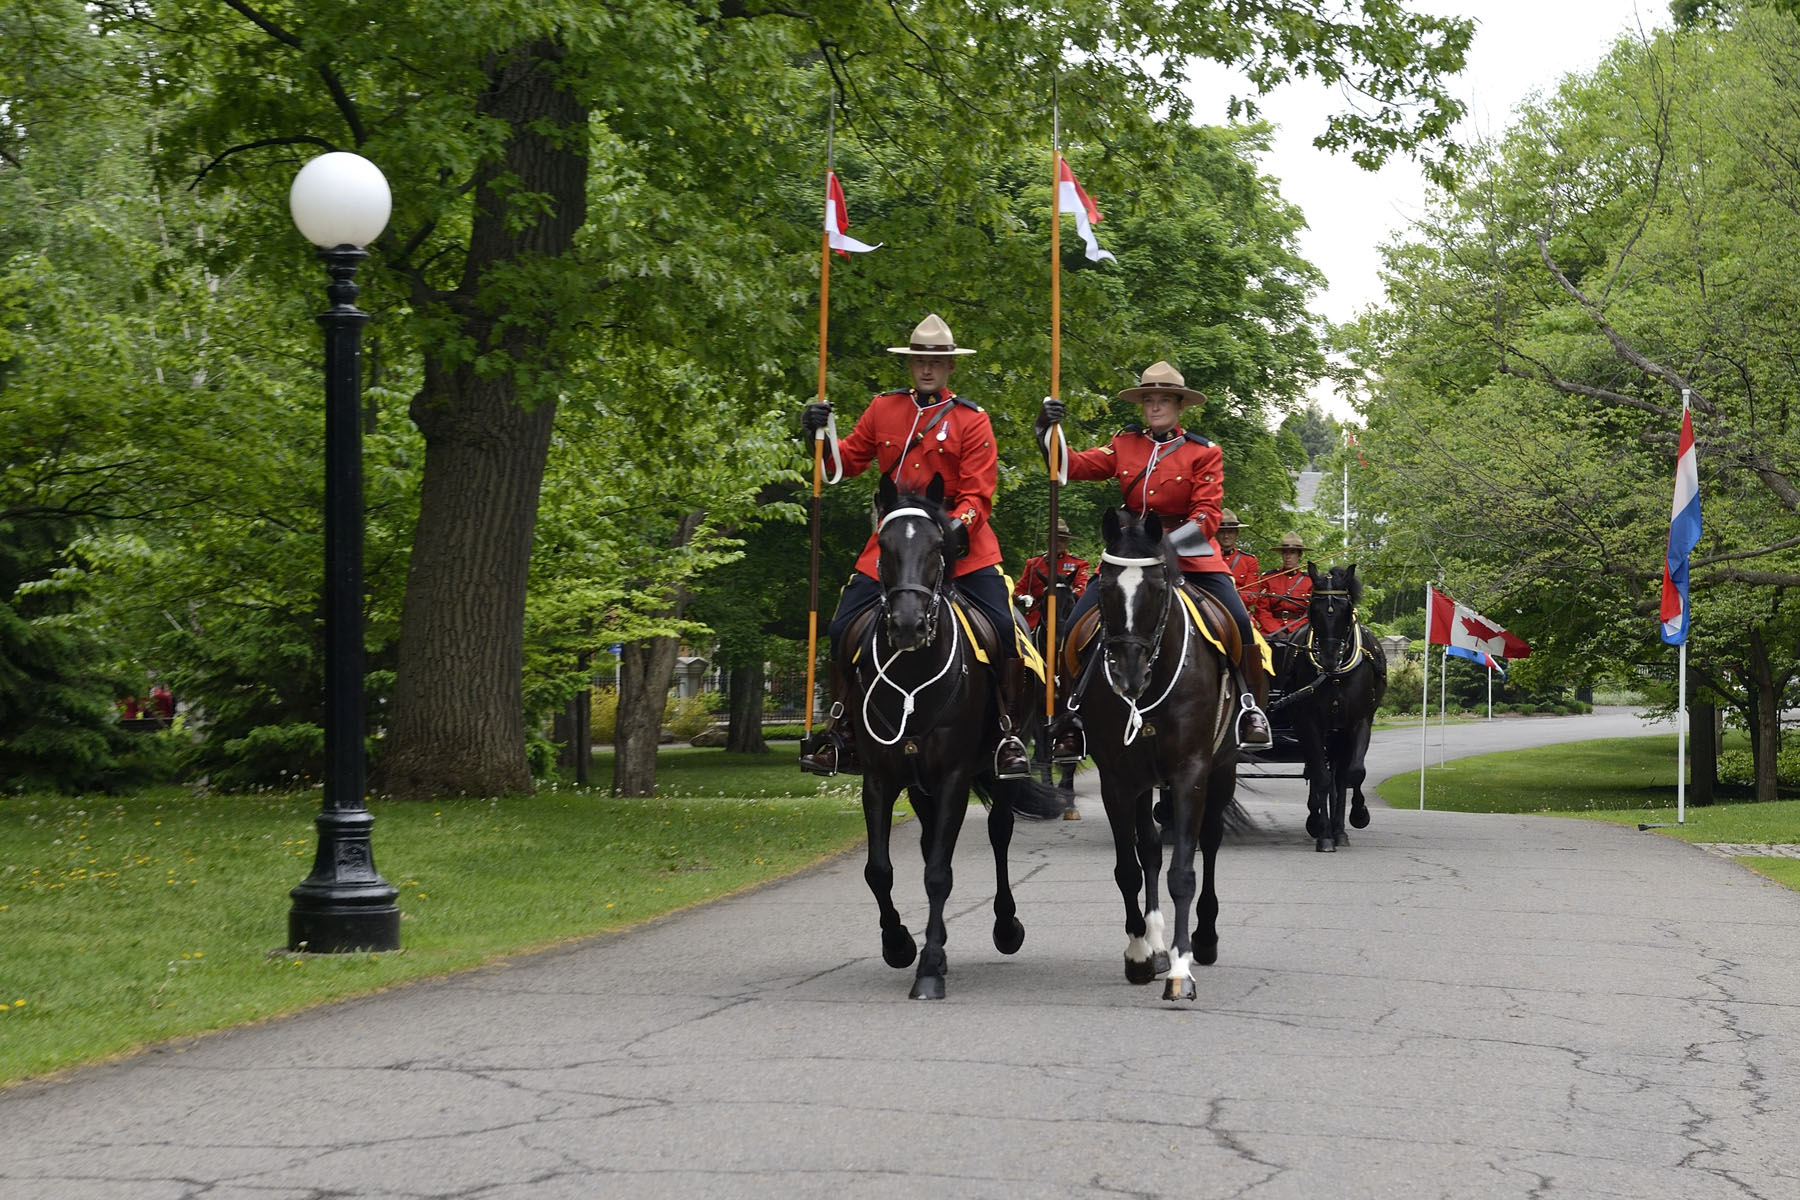 Arriving in a Royal Canadian Mounted Police (RCMP) landau, Their Majesties King Willem-Alexander and Queen Máxima of the Netherlands were welcomed to Rideau Hall.